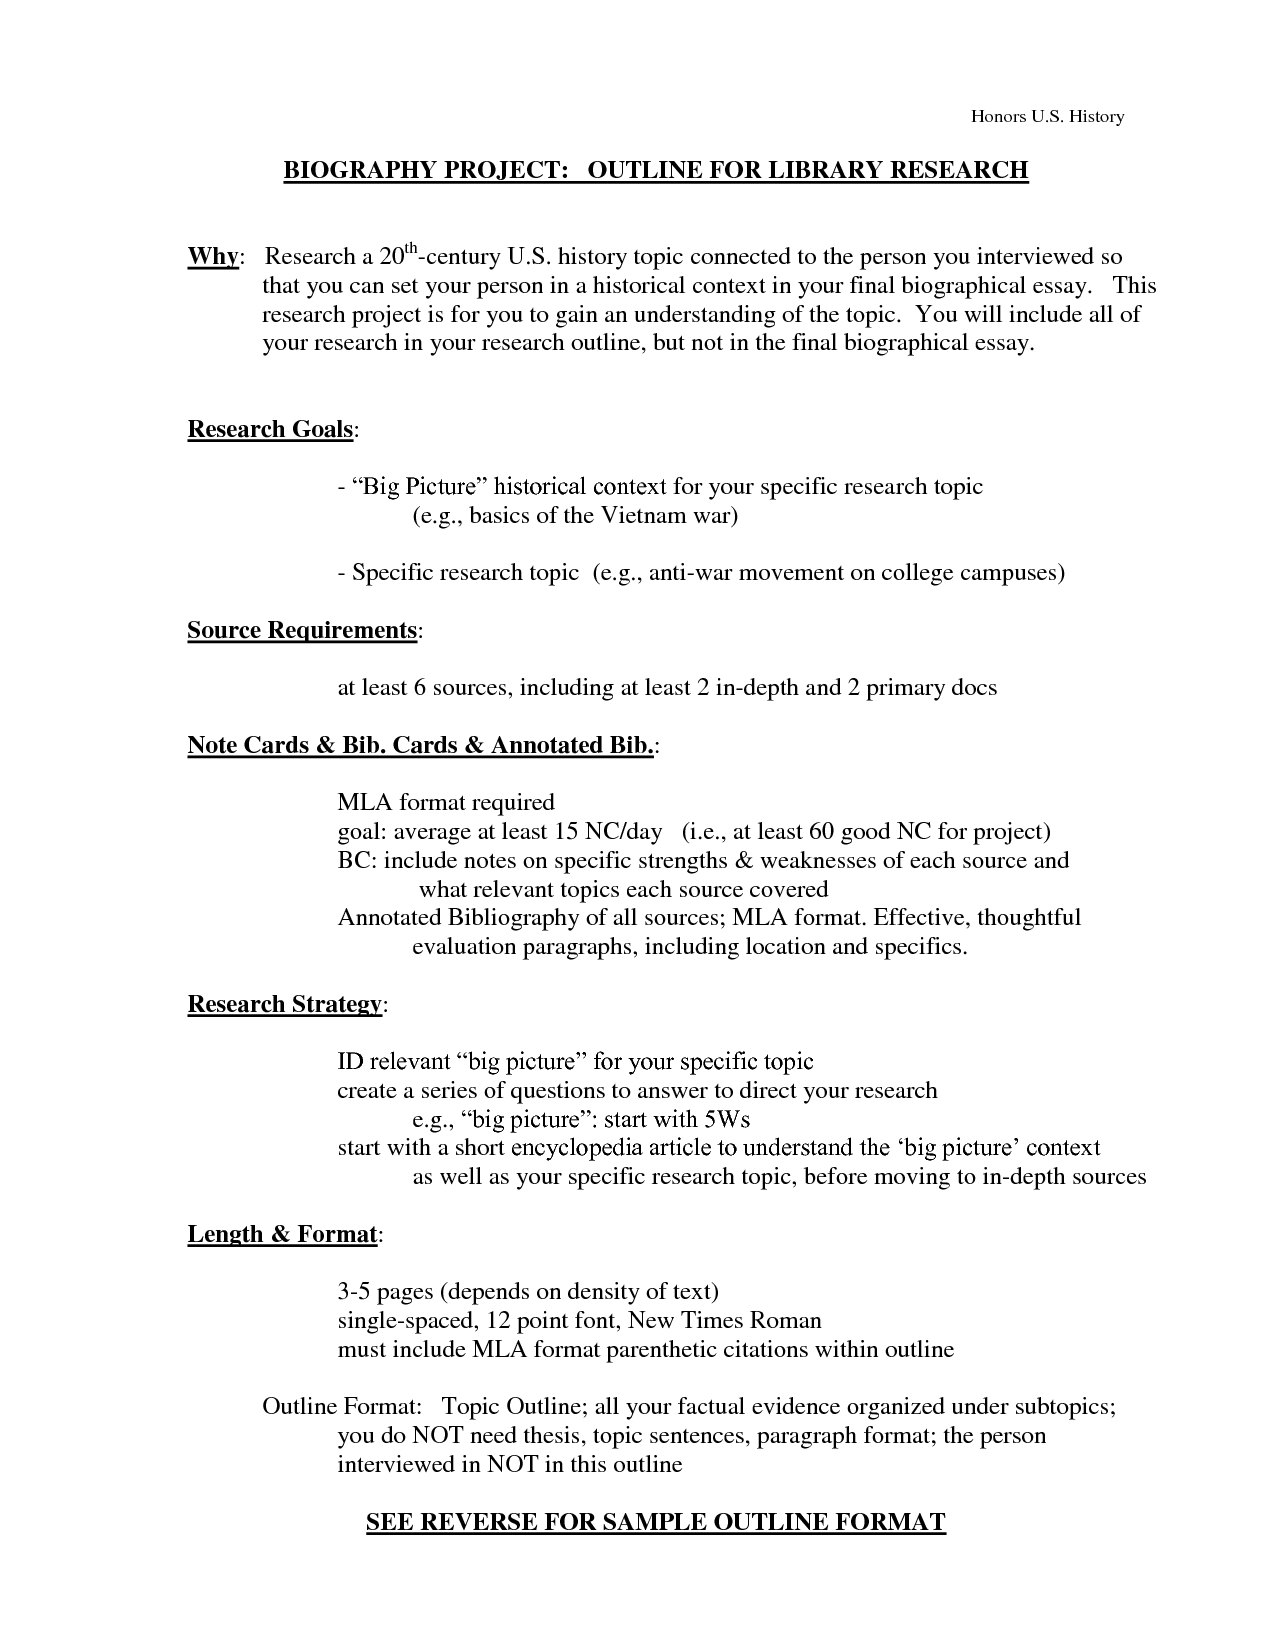 020 How To Write Biography Essay Writing Sample Biographicalple Research Paper Outline Of About Yourselfples Life Story Essays Changing History Lesson Goal Personal Archaicawful A Good Full